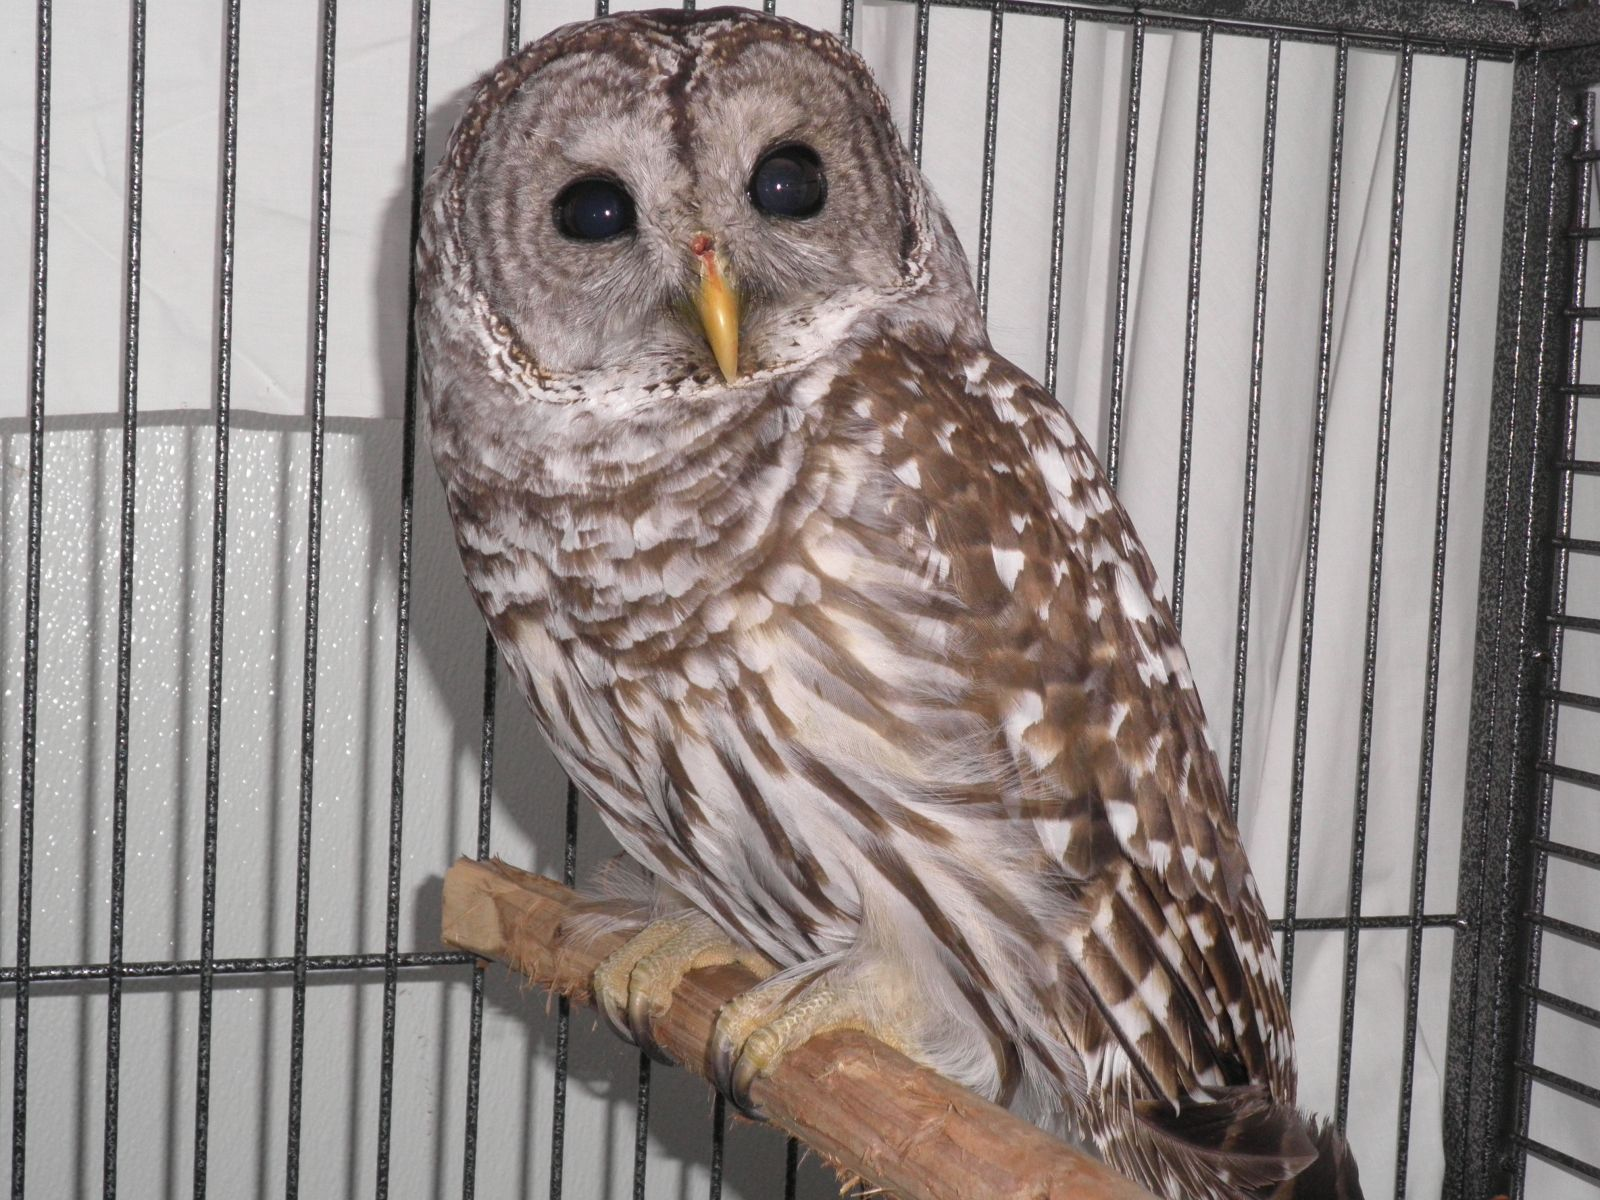 barred owl2 1-12-12